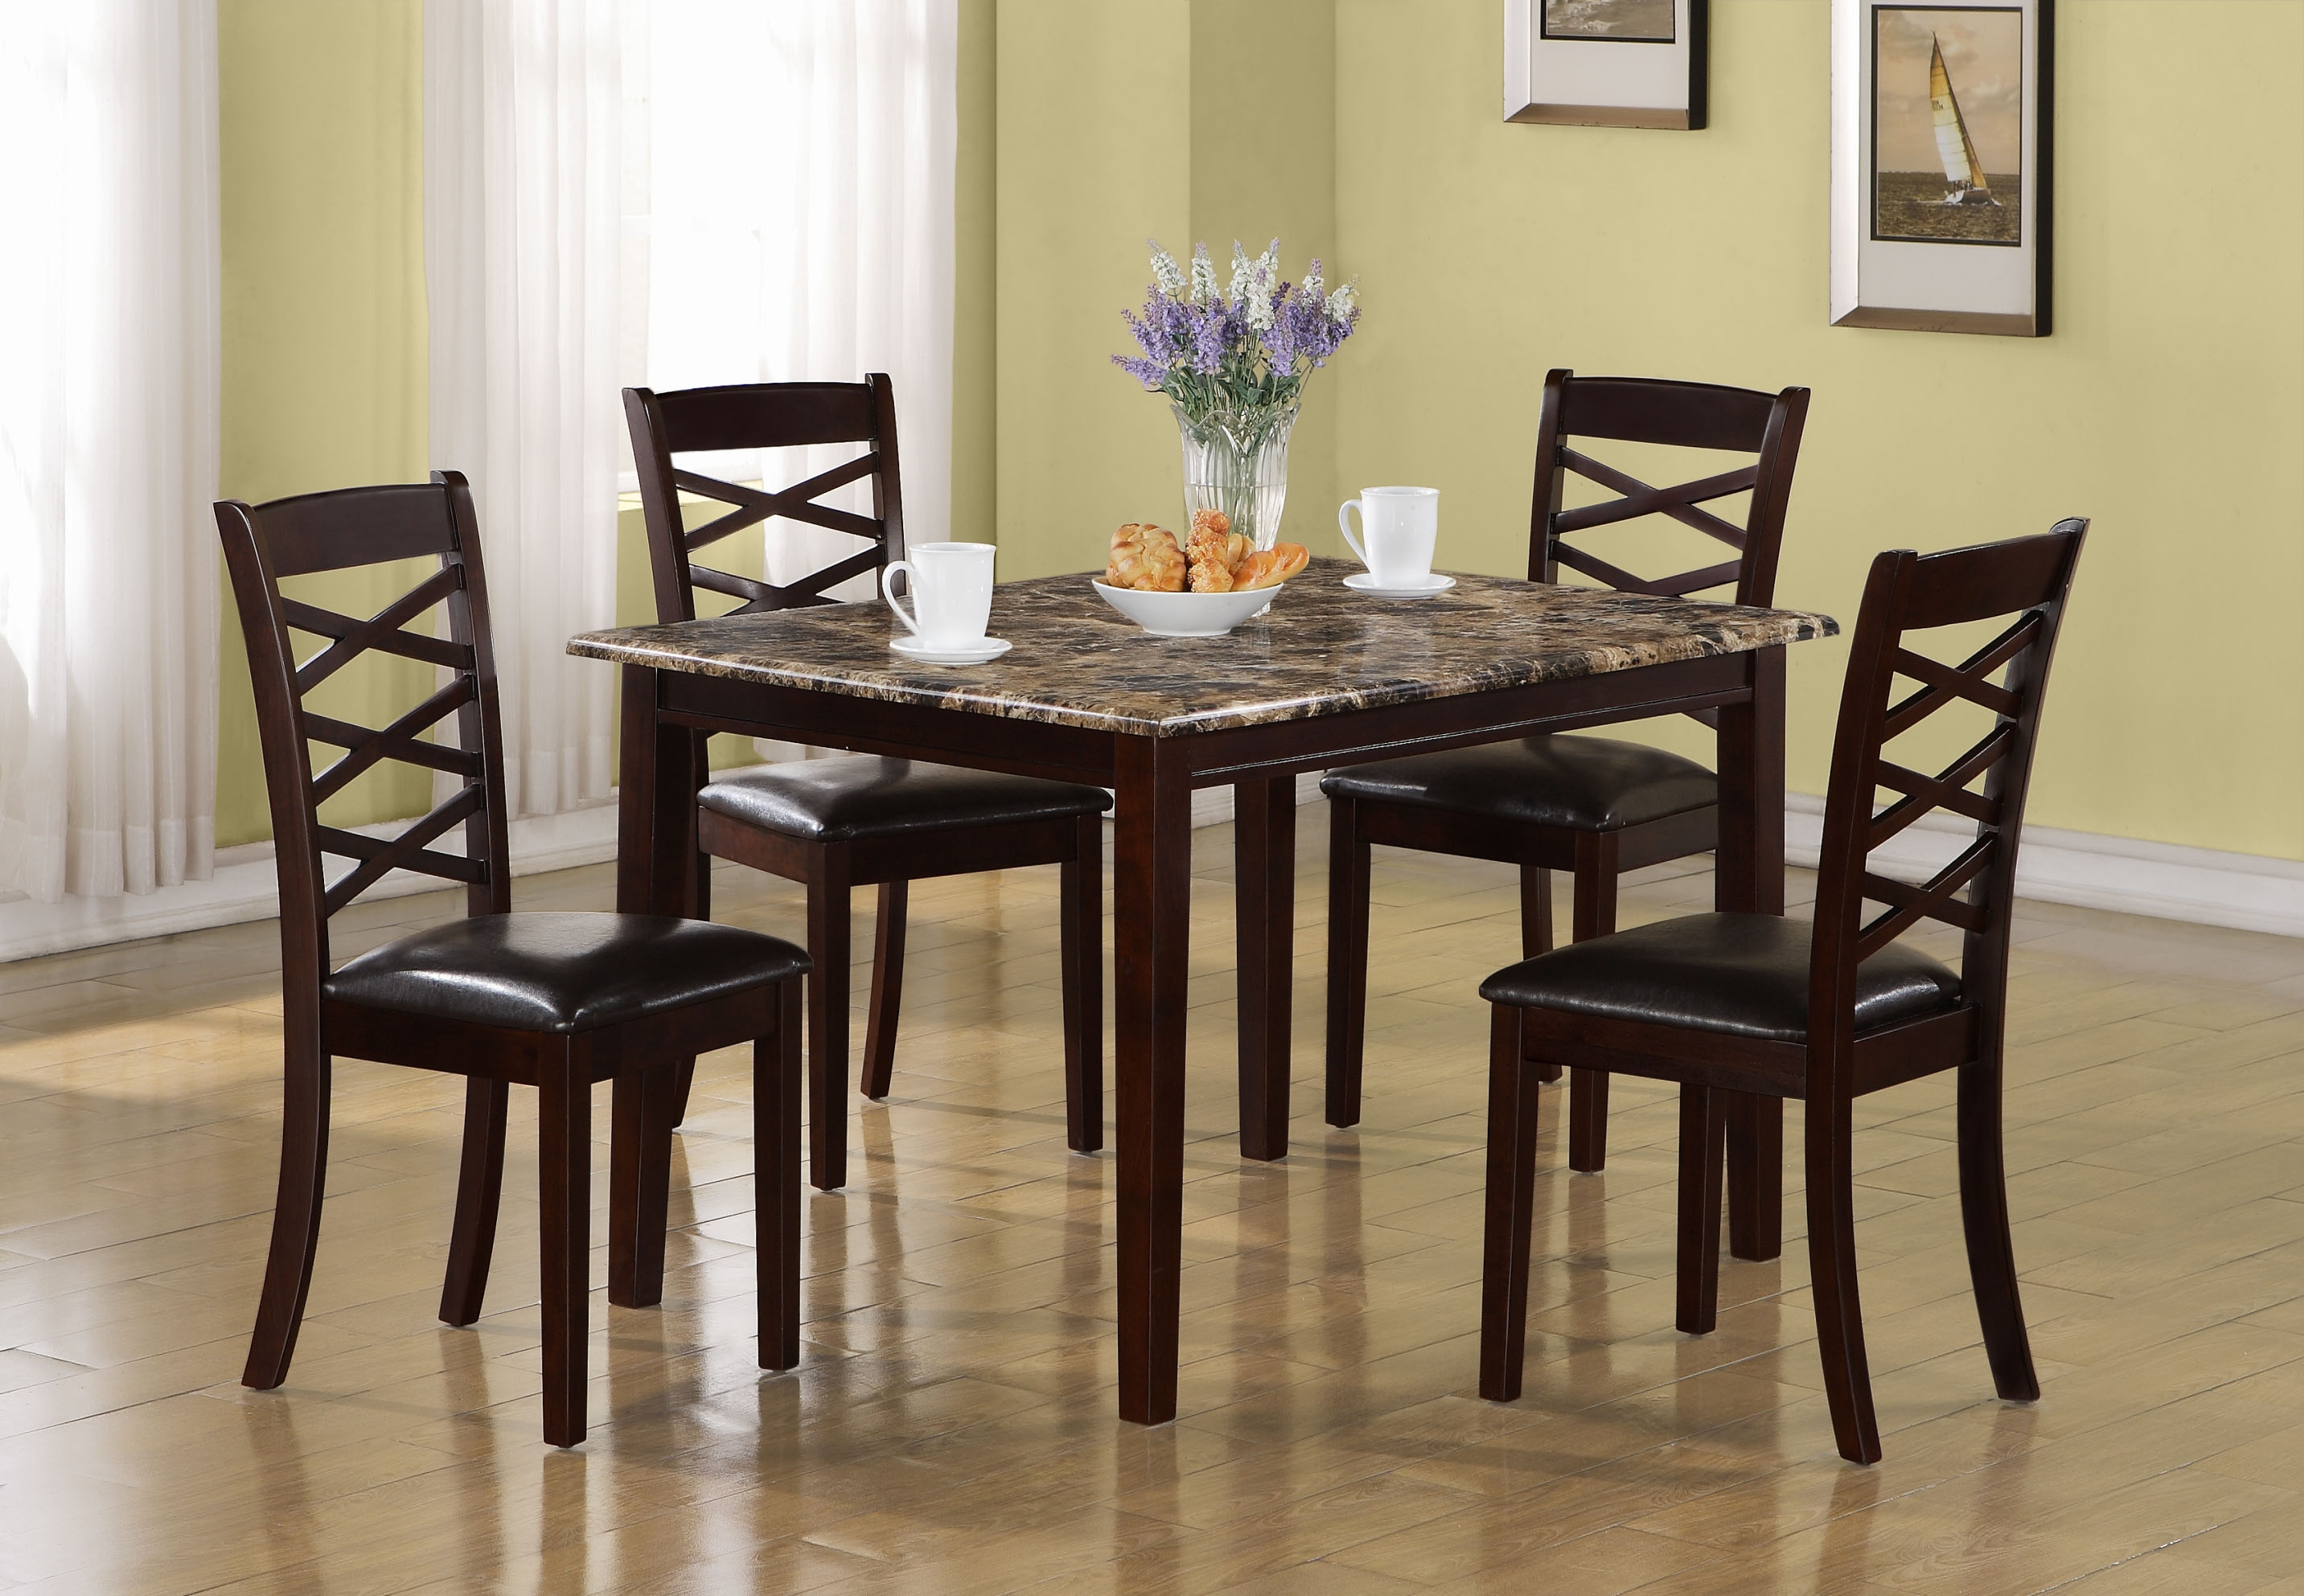 Captivating Kitchen Table Sets Under 100 1 Furniture Winsome Dining Layjao